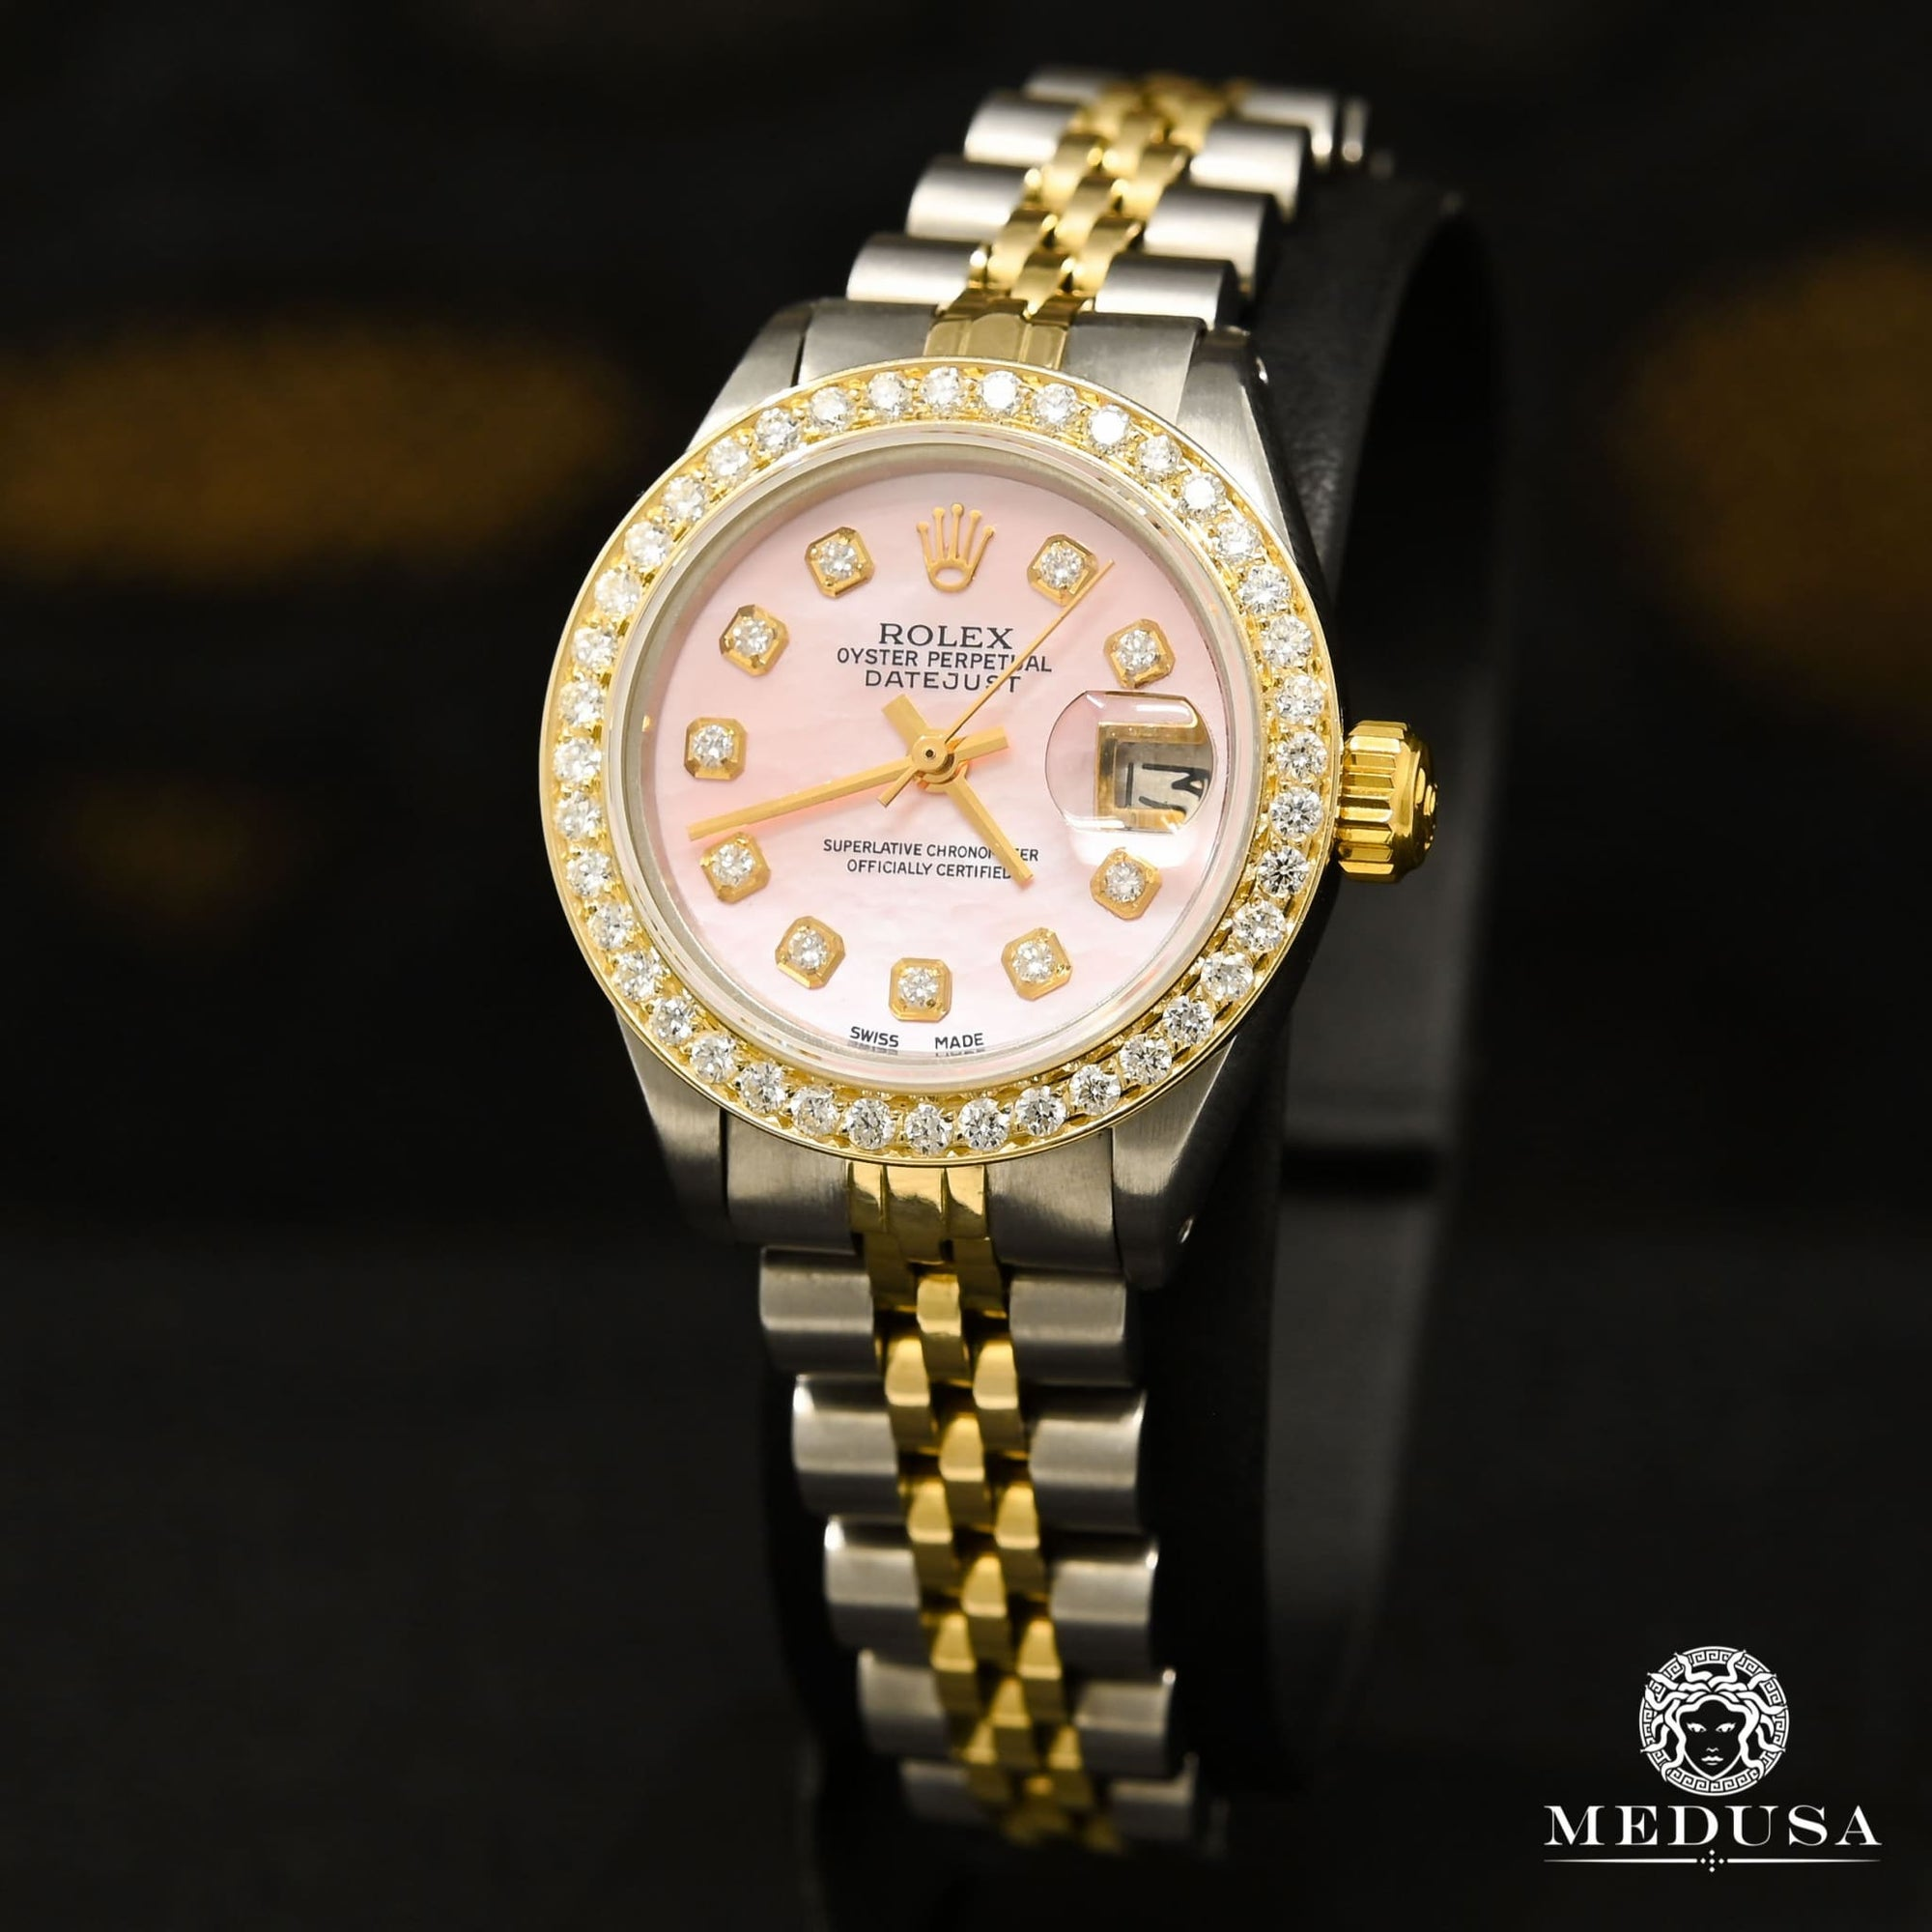 Montre Rolex | Montre Femme Rolex Datejust 26mm - Pink Or 2 Tons